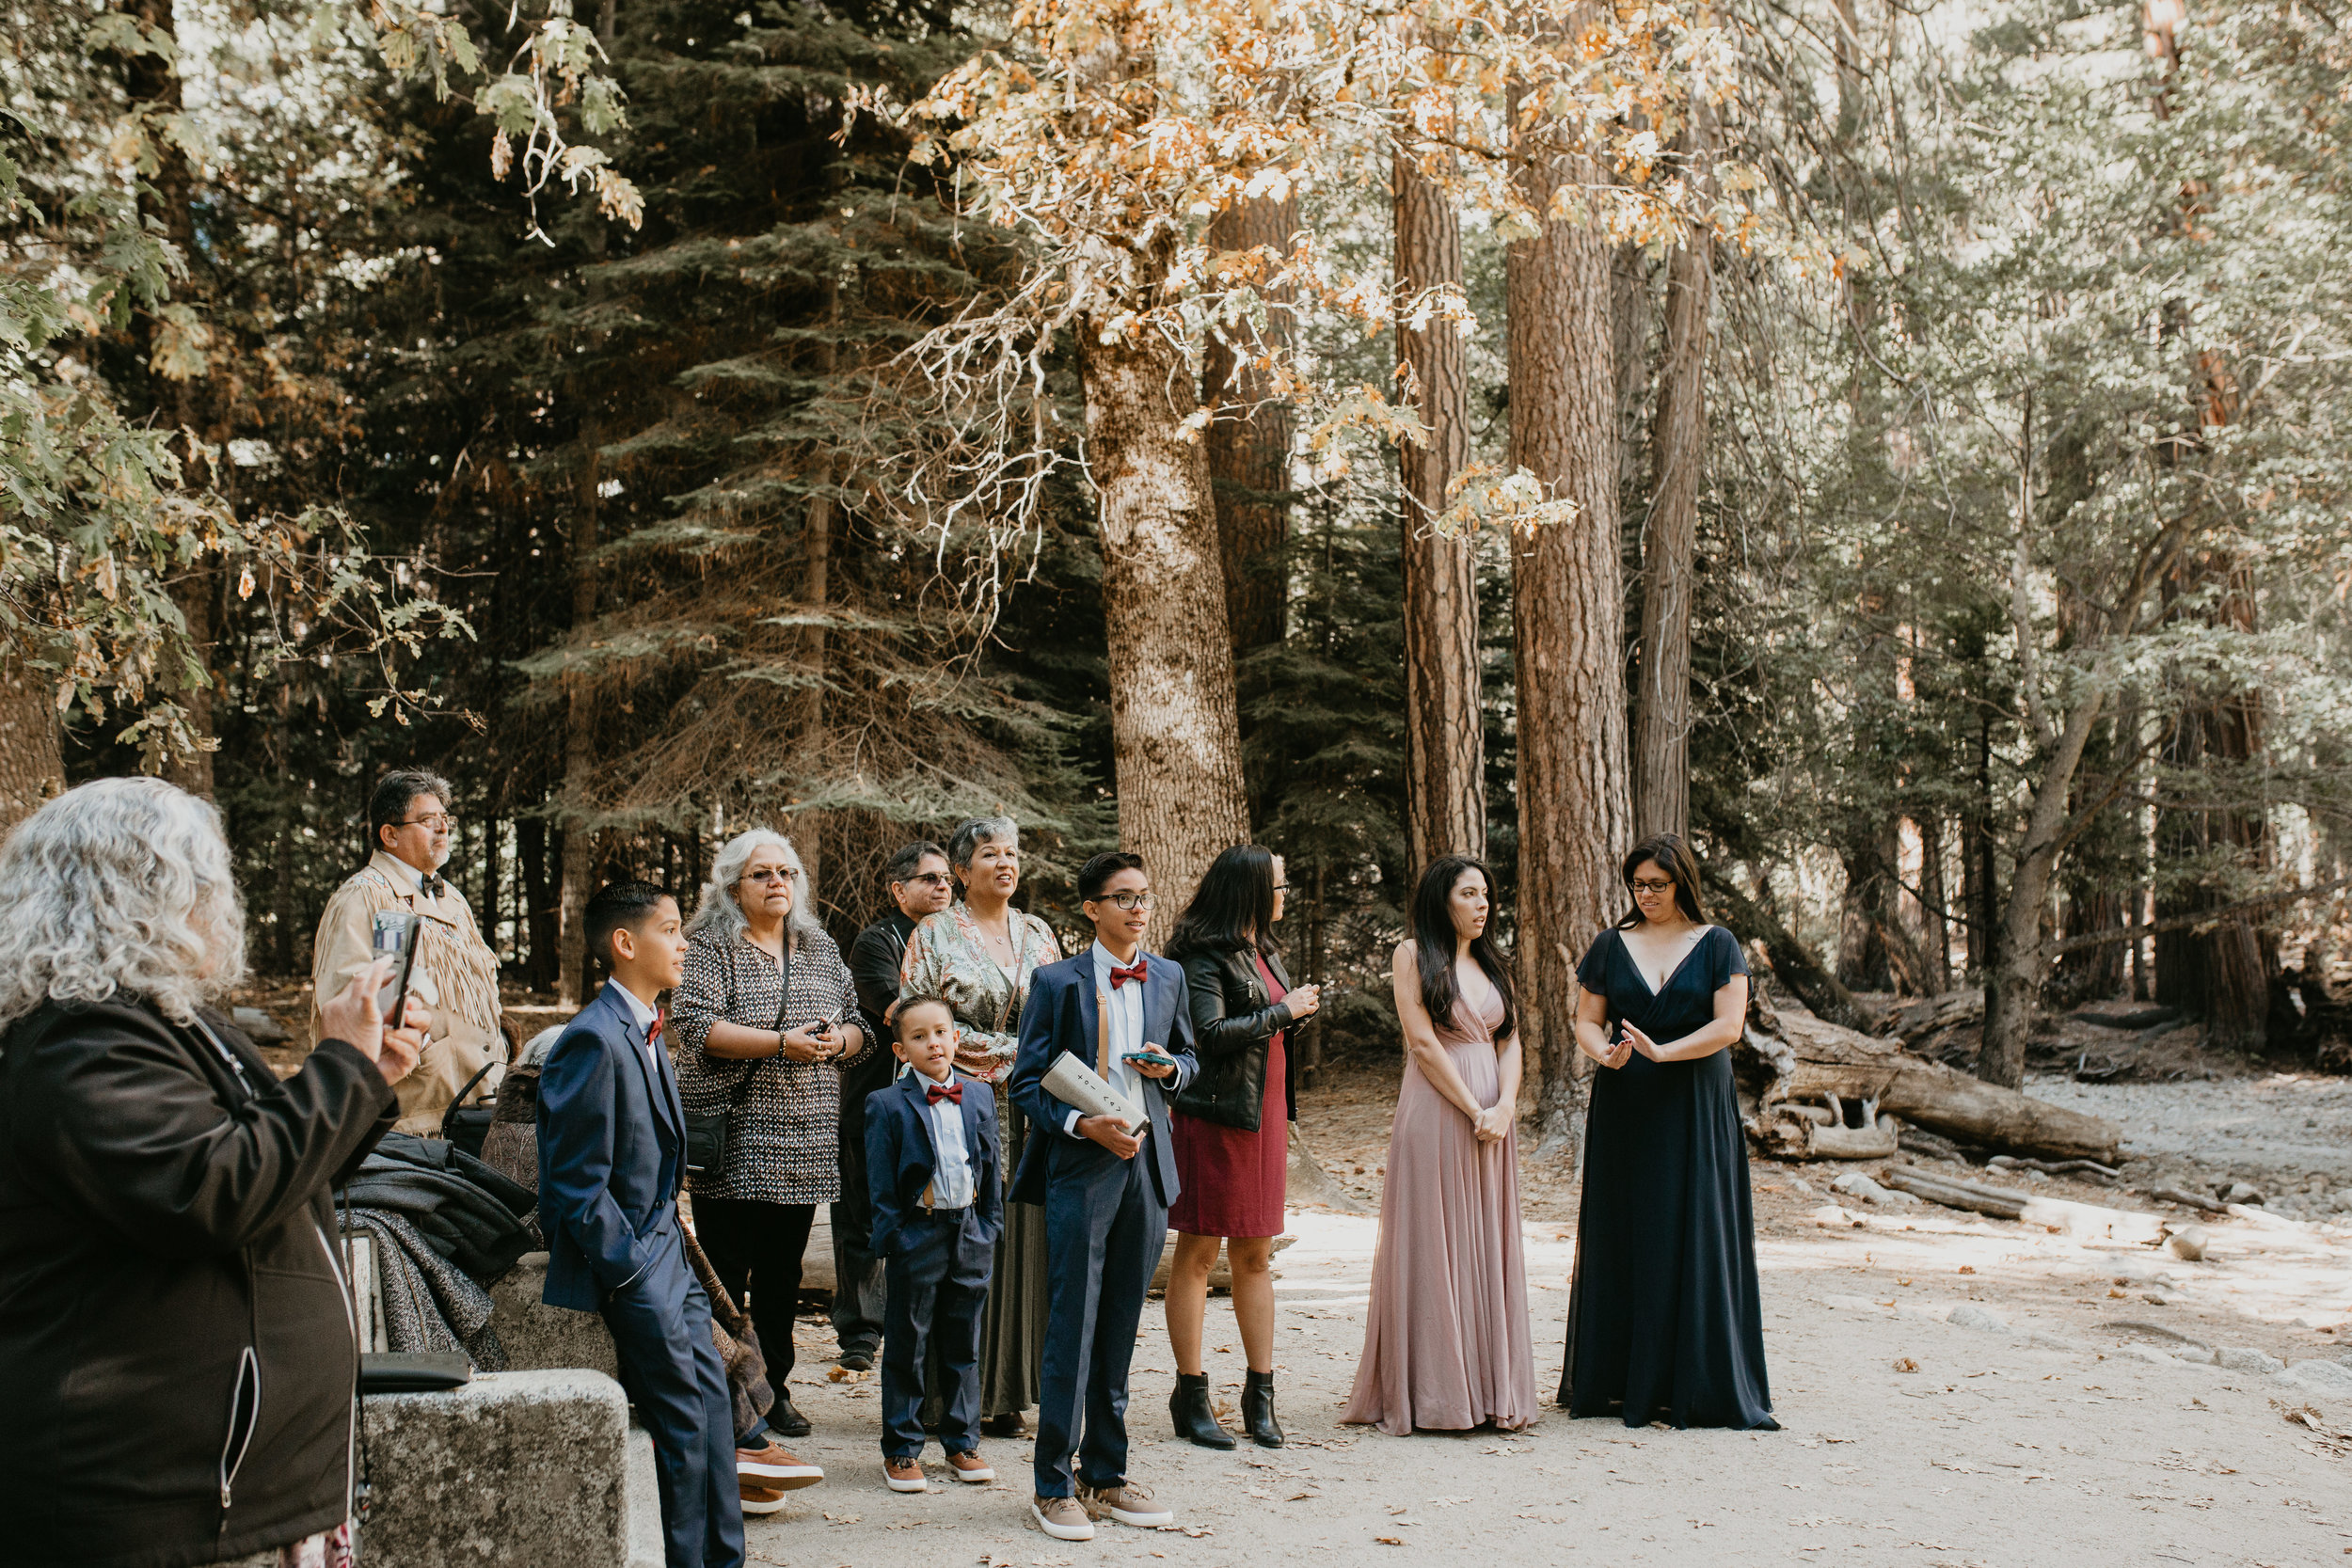 nicole-daacke-photography-intimate-elopement-wedding-yosemite-national-park-california-taft-point-sunset-photos-yosemite-valley-tunnel-view-first-look-sunrise-golden-granite-hiking-adventure-wedding-adventurous-elopement-photographer-38.jpg